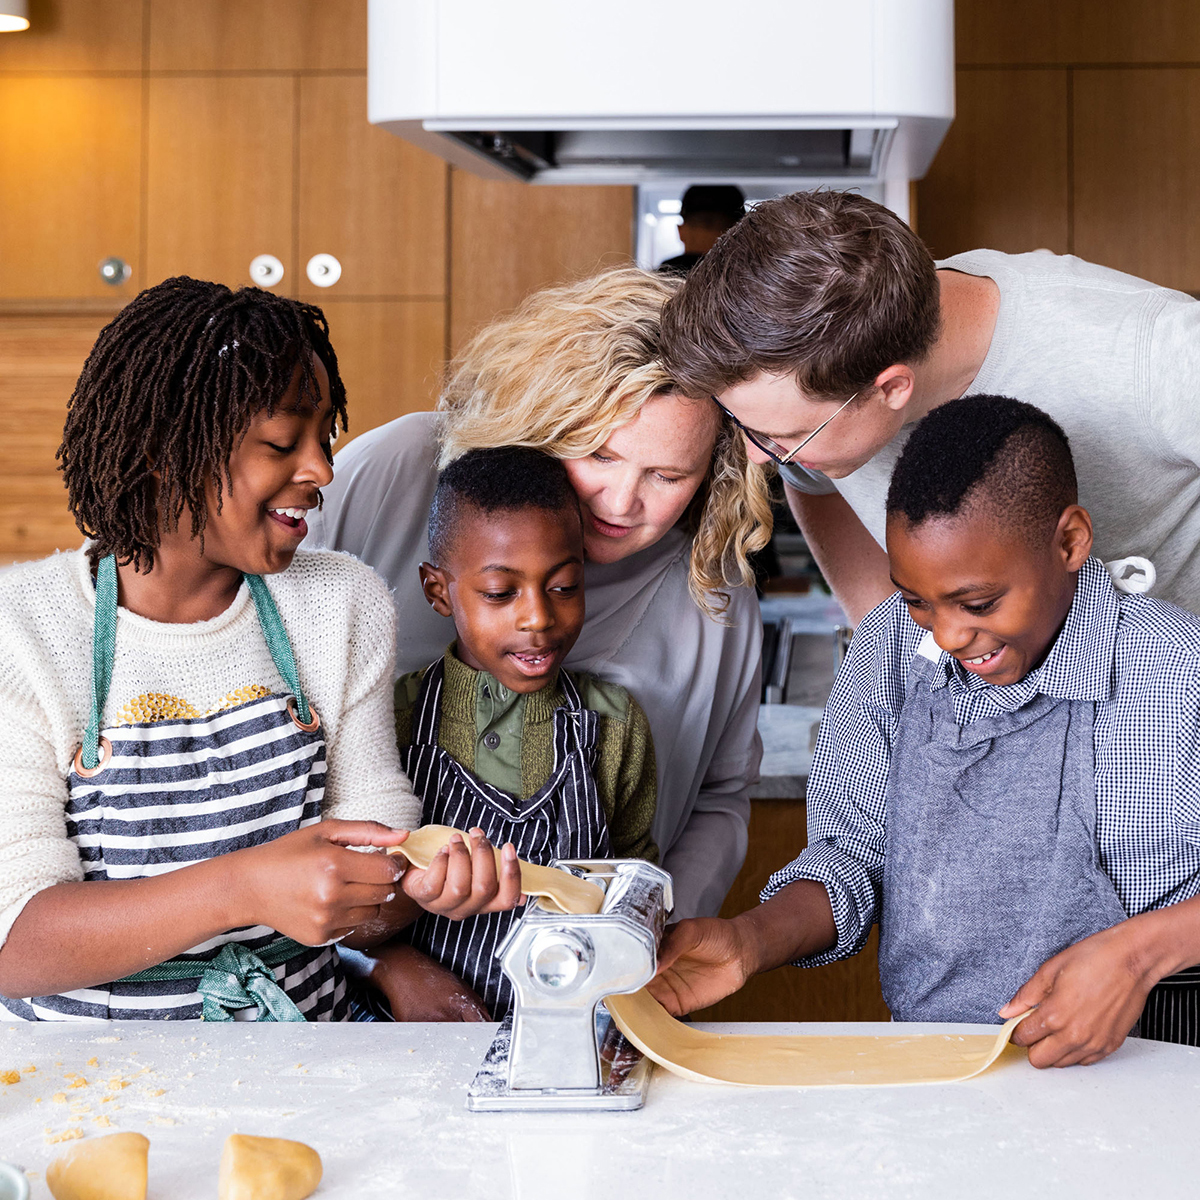 Kim and Tyler with kids making pasta